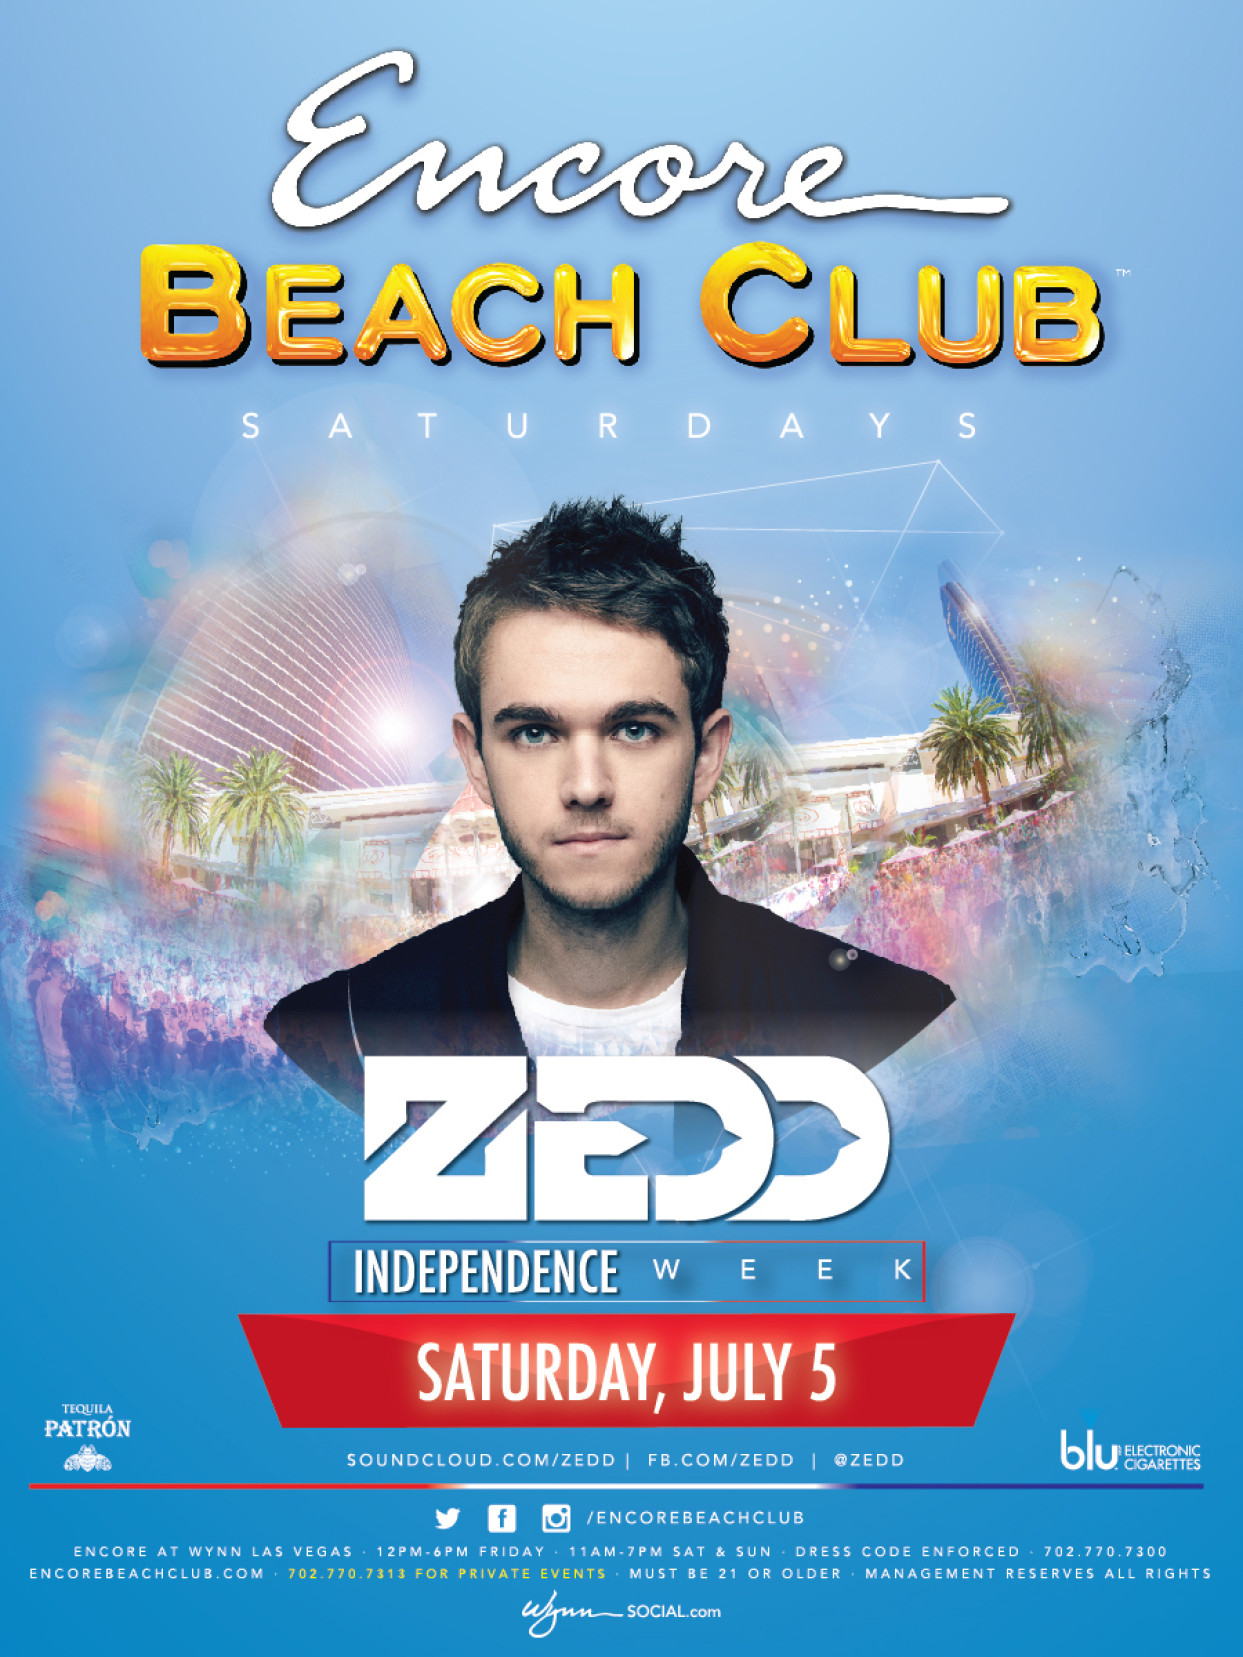 Zedd at Encore Beach Club Las Vegas July 5th Saturday